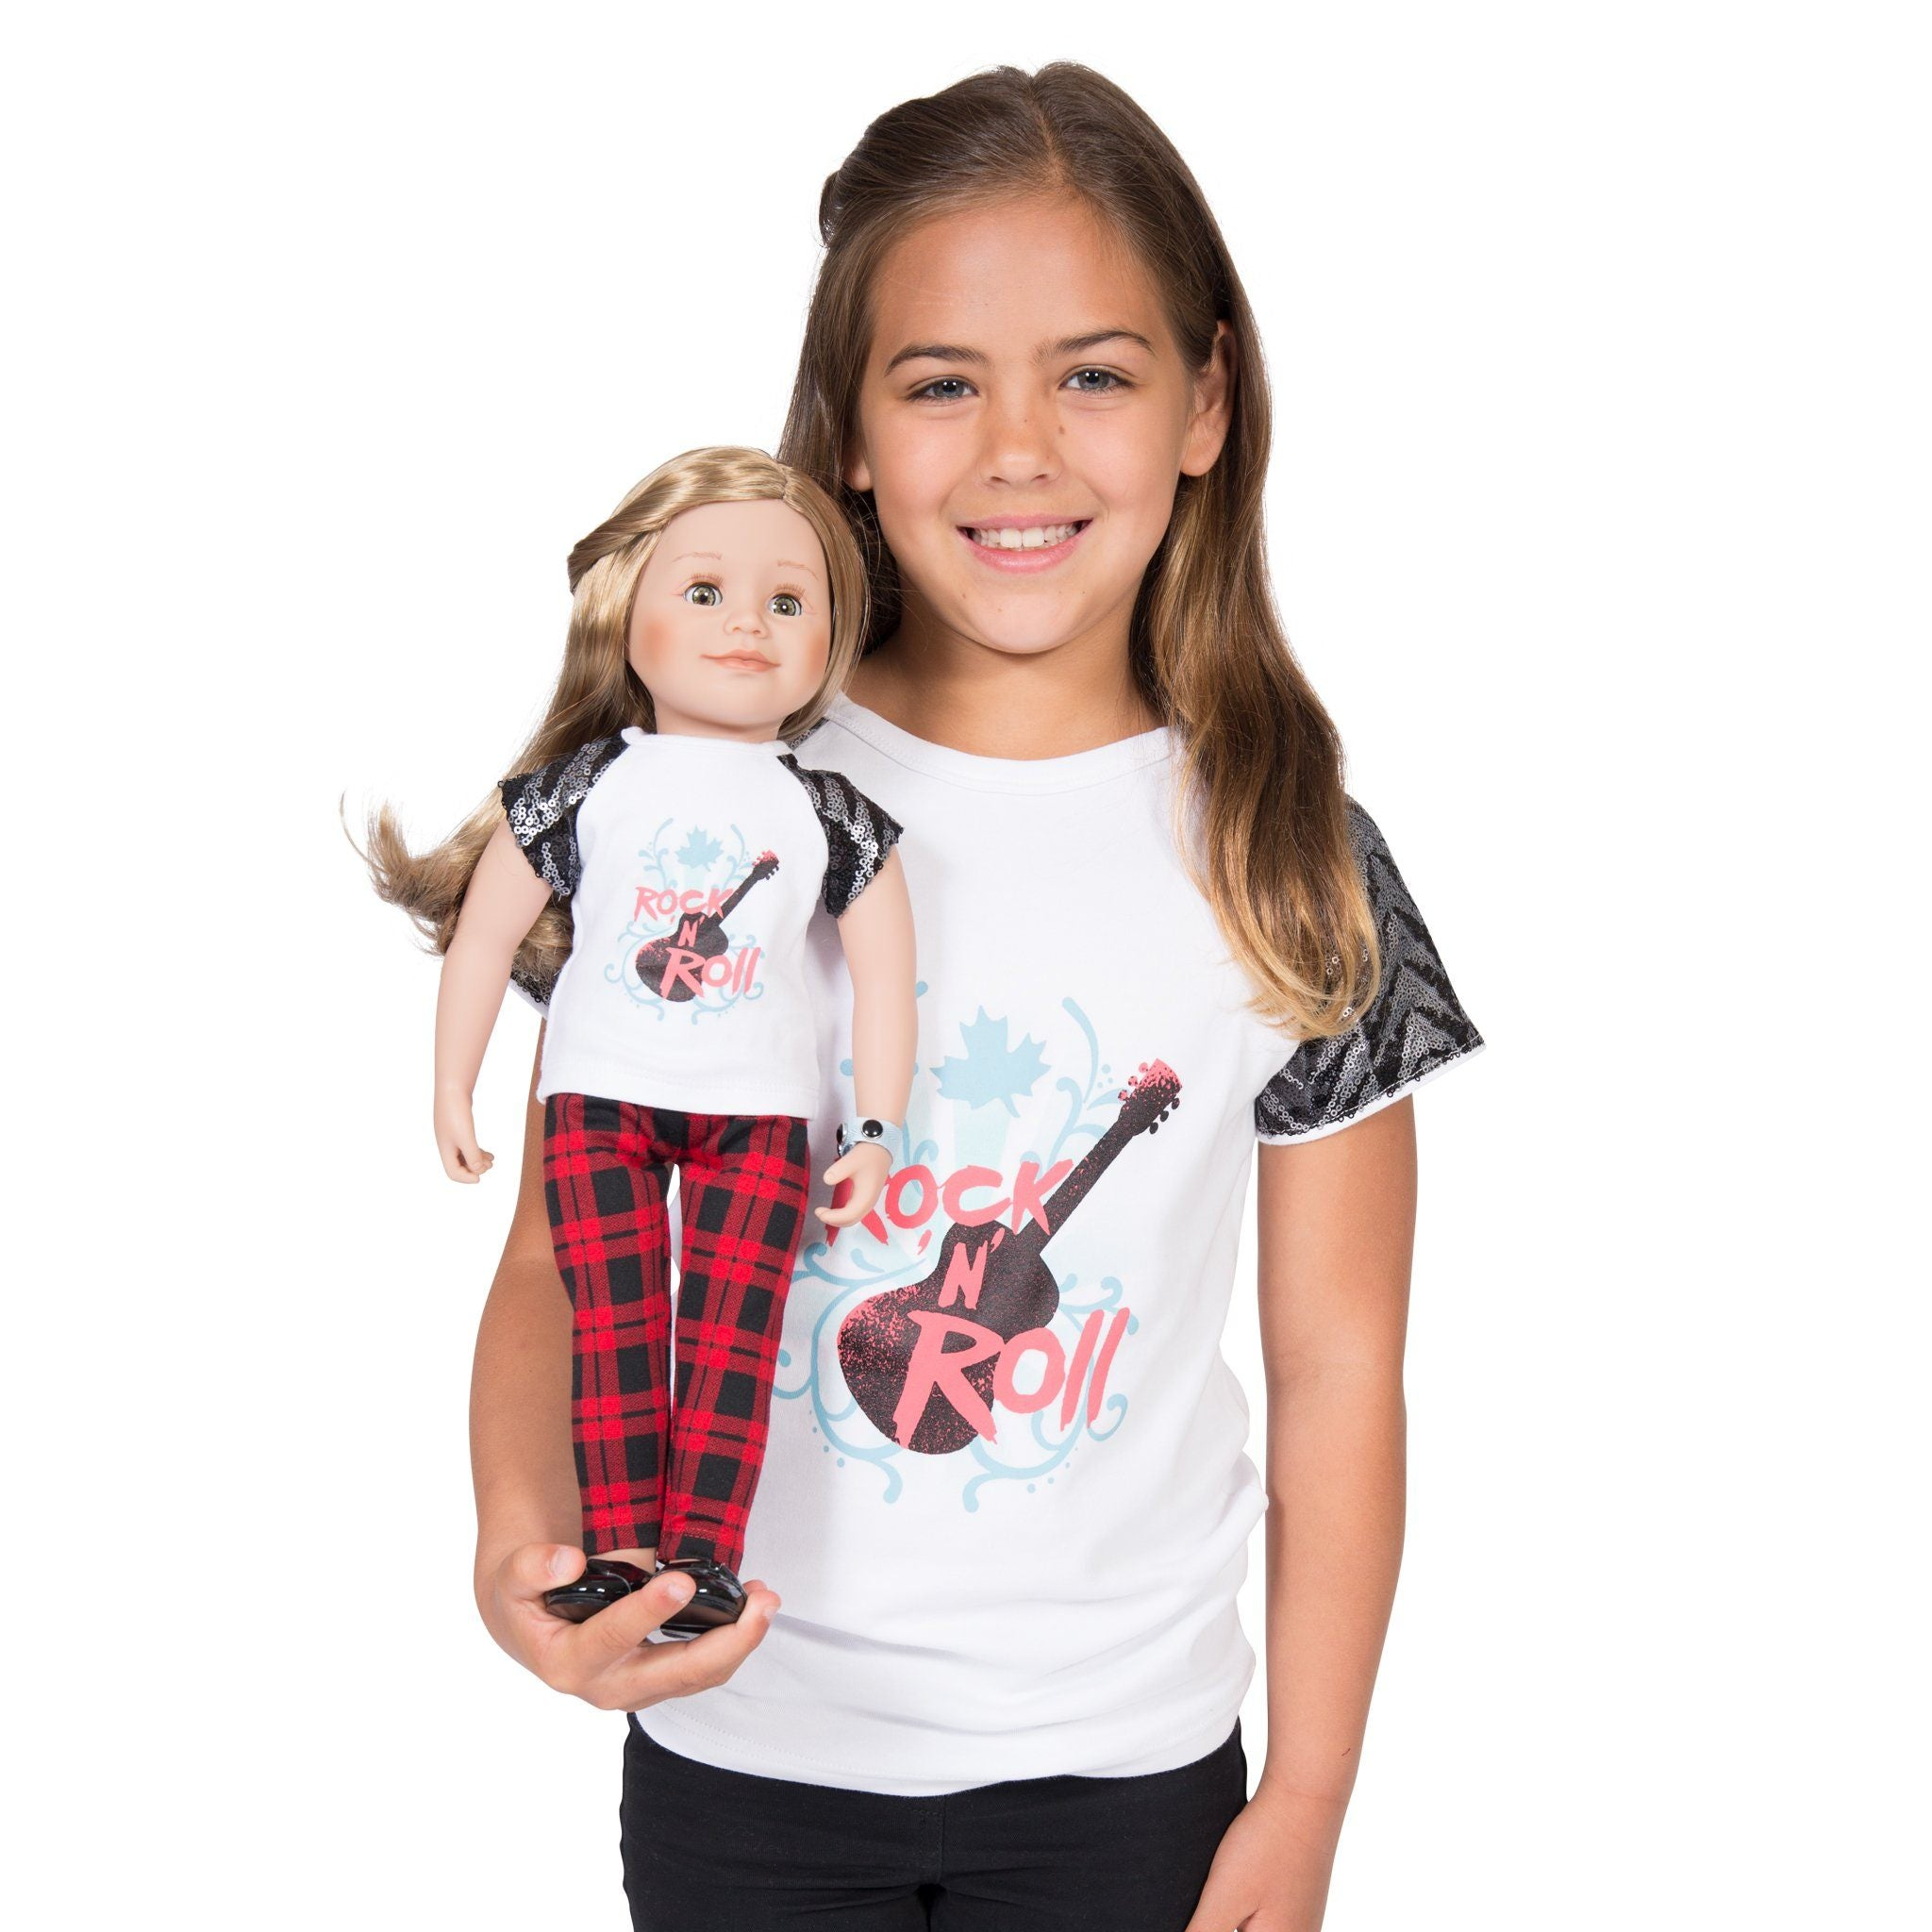 Rockin Couture rock n roll graphic t-shirt for girls with sequin pattern sleeves.